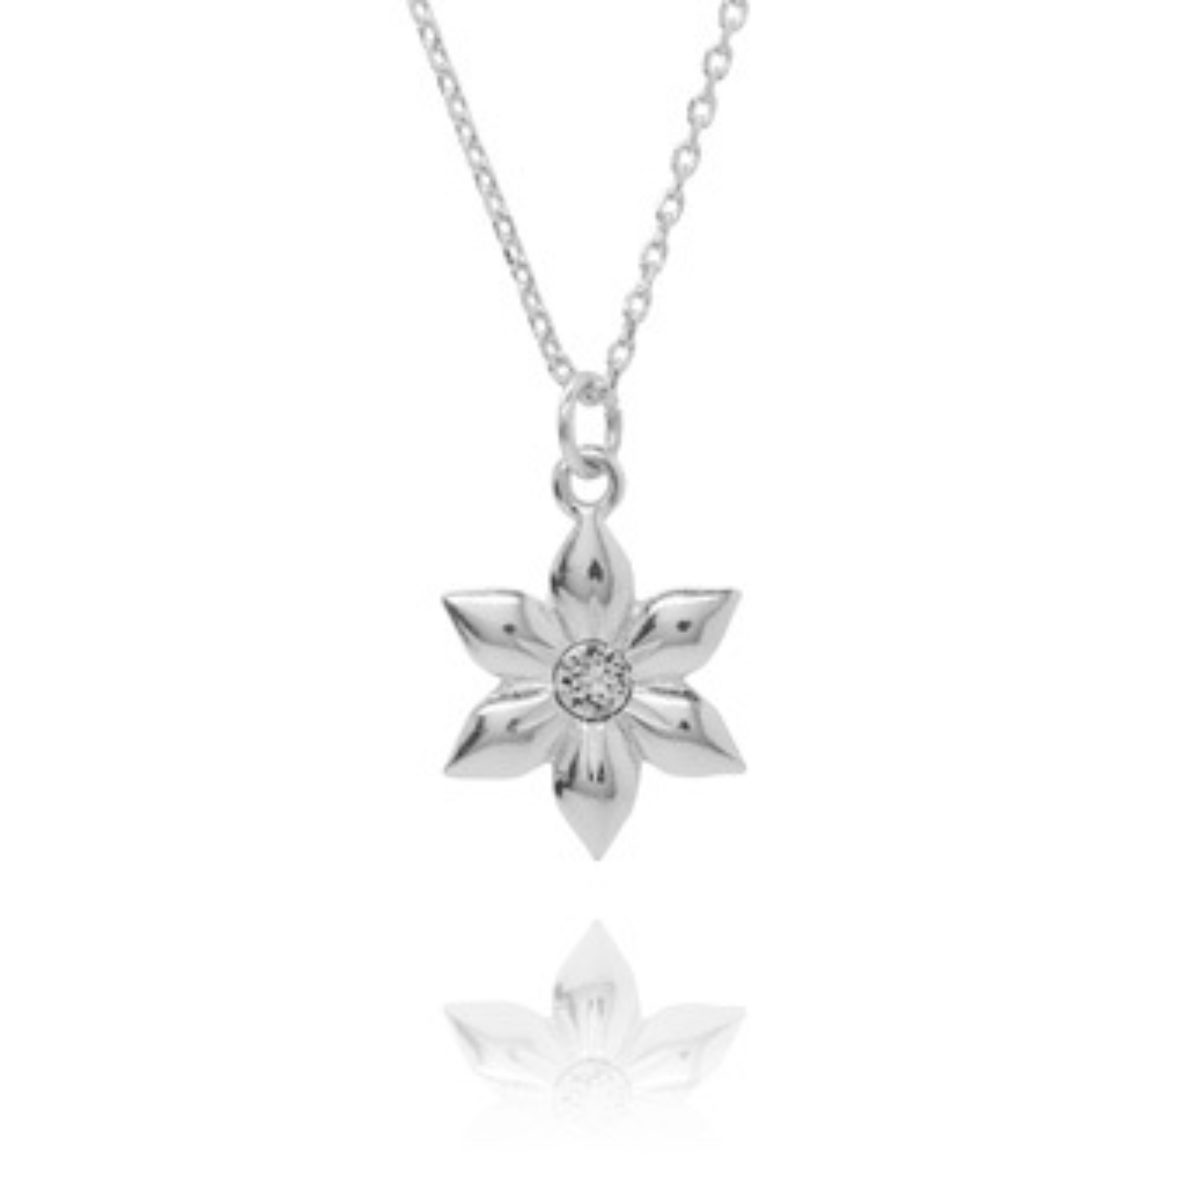 Symbolic Jewellery Meanings Charm Meanings